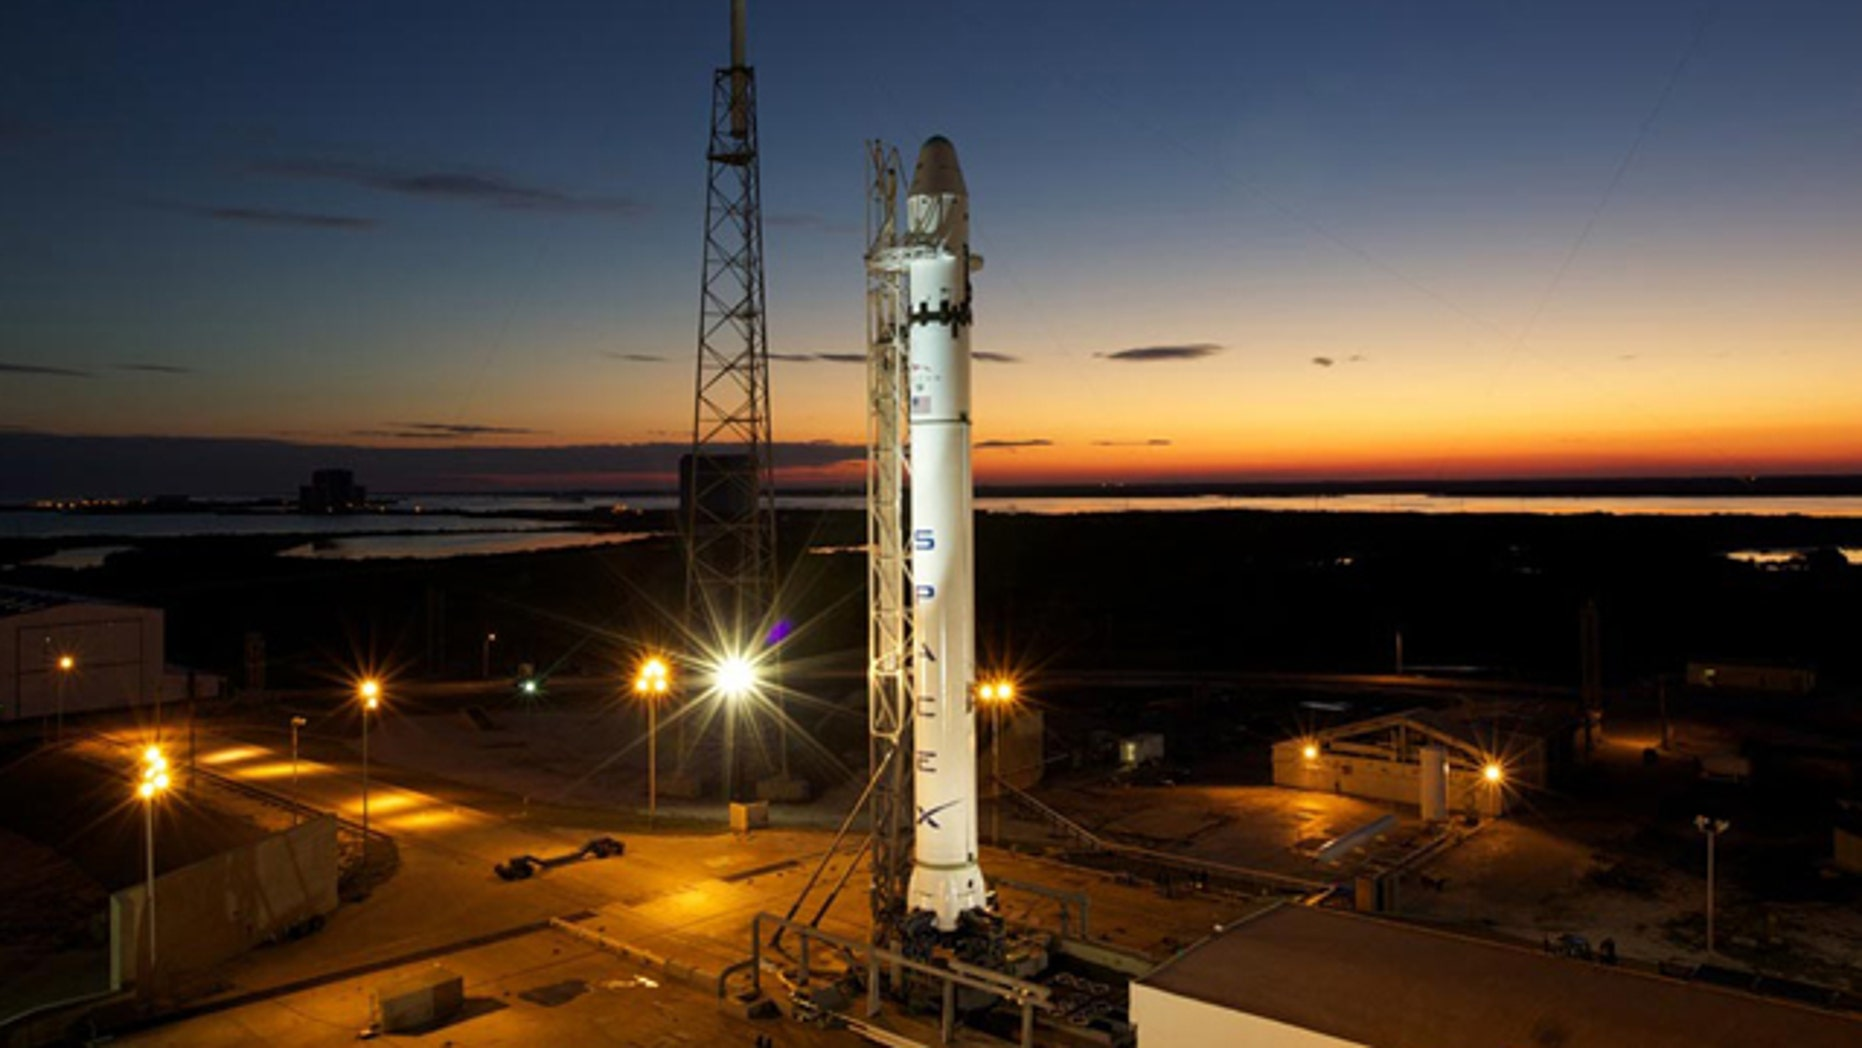 SpaceX's debut Falcon 9 rocket stands atop its launch pad at Space Launch Complex 40 at the Cape Canaveral Air Force Station in Florida in late Feb. 2010 for final tests ahead of its maiden test flight. First launch set for June 2010.